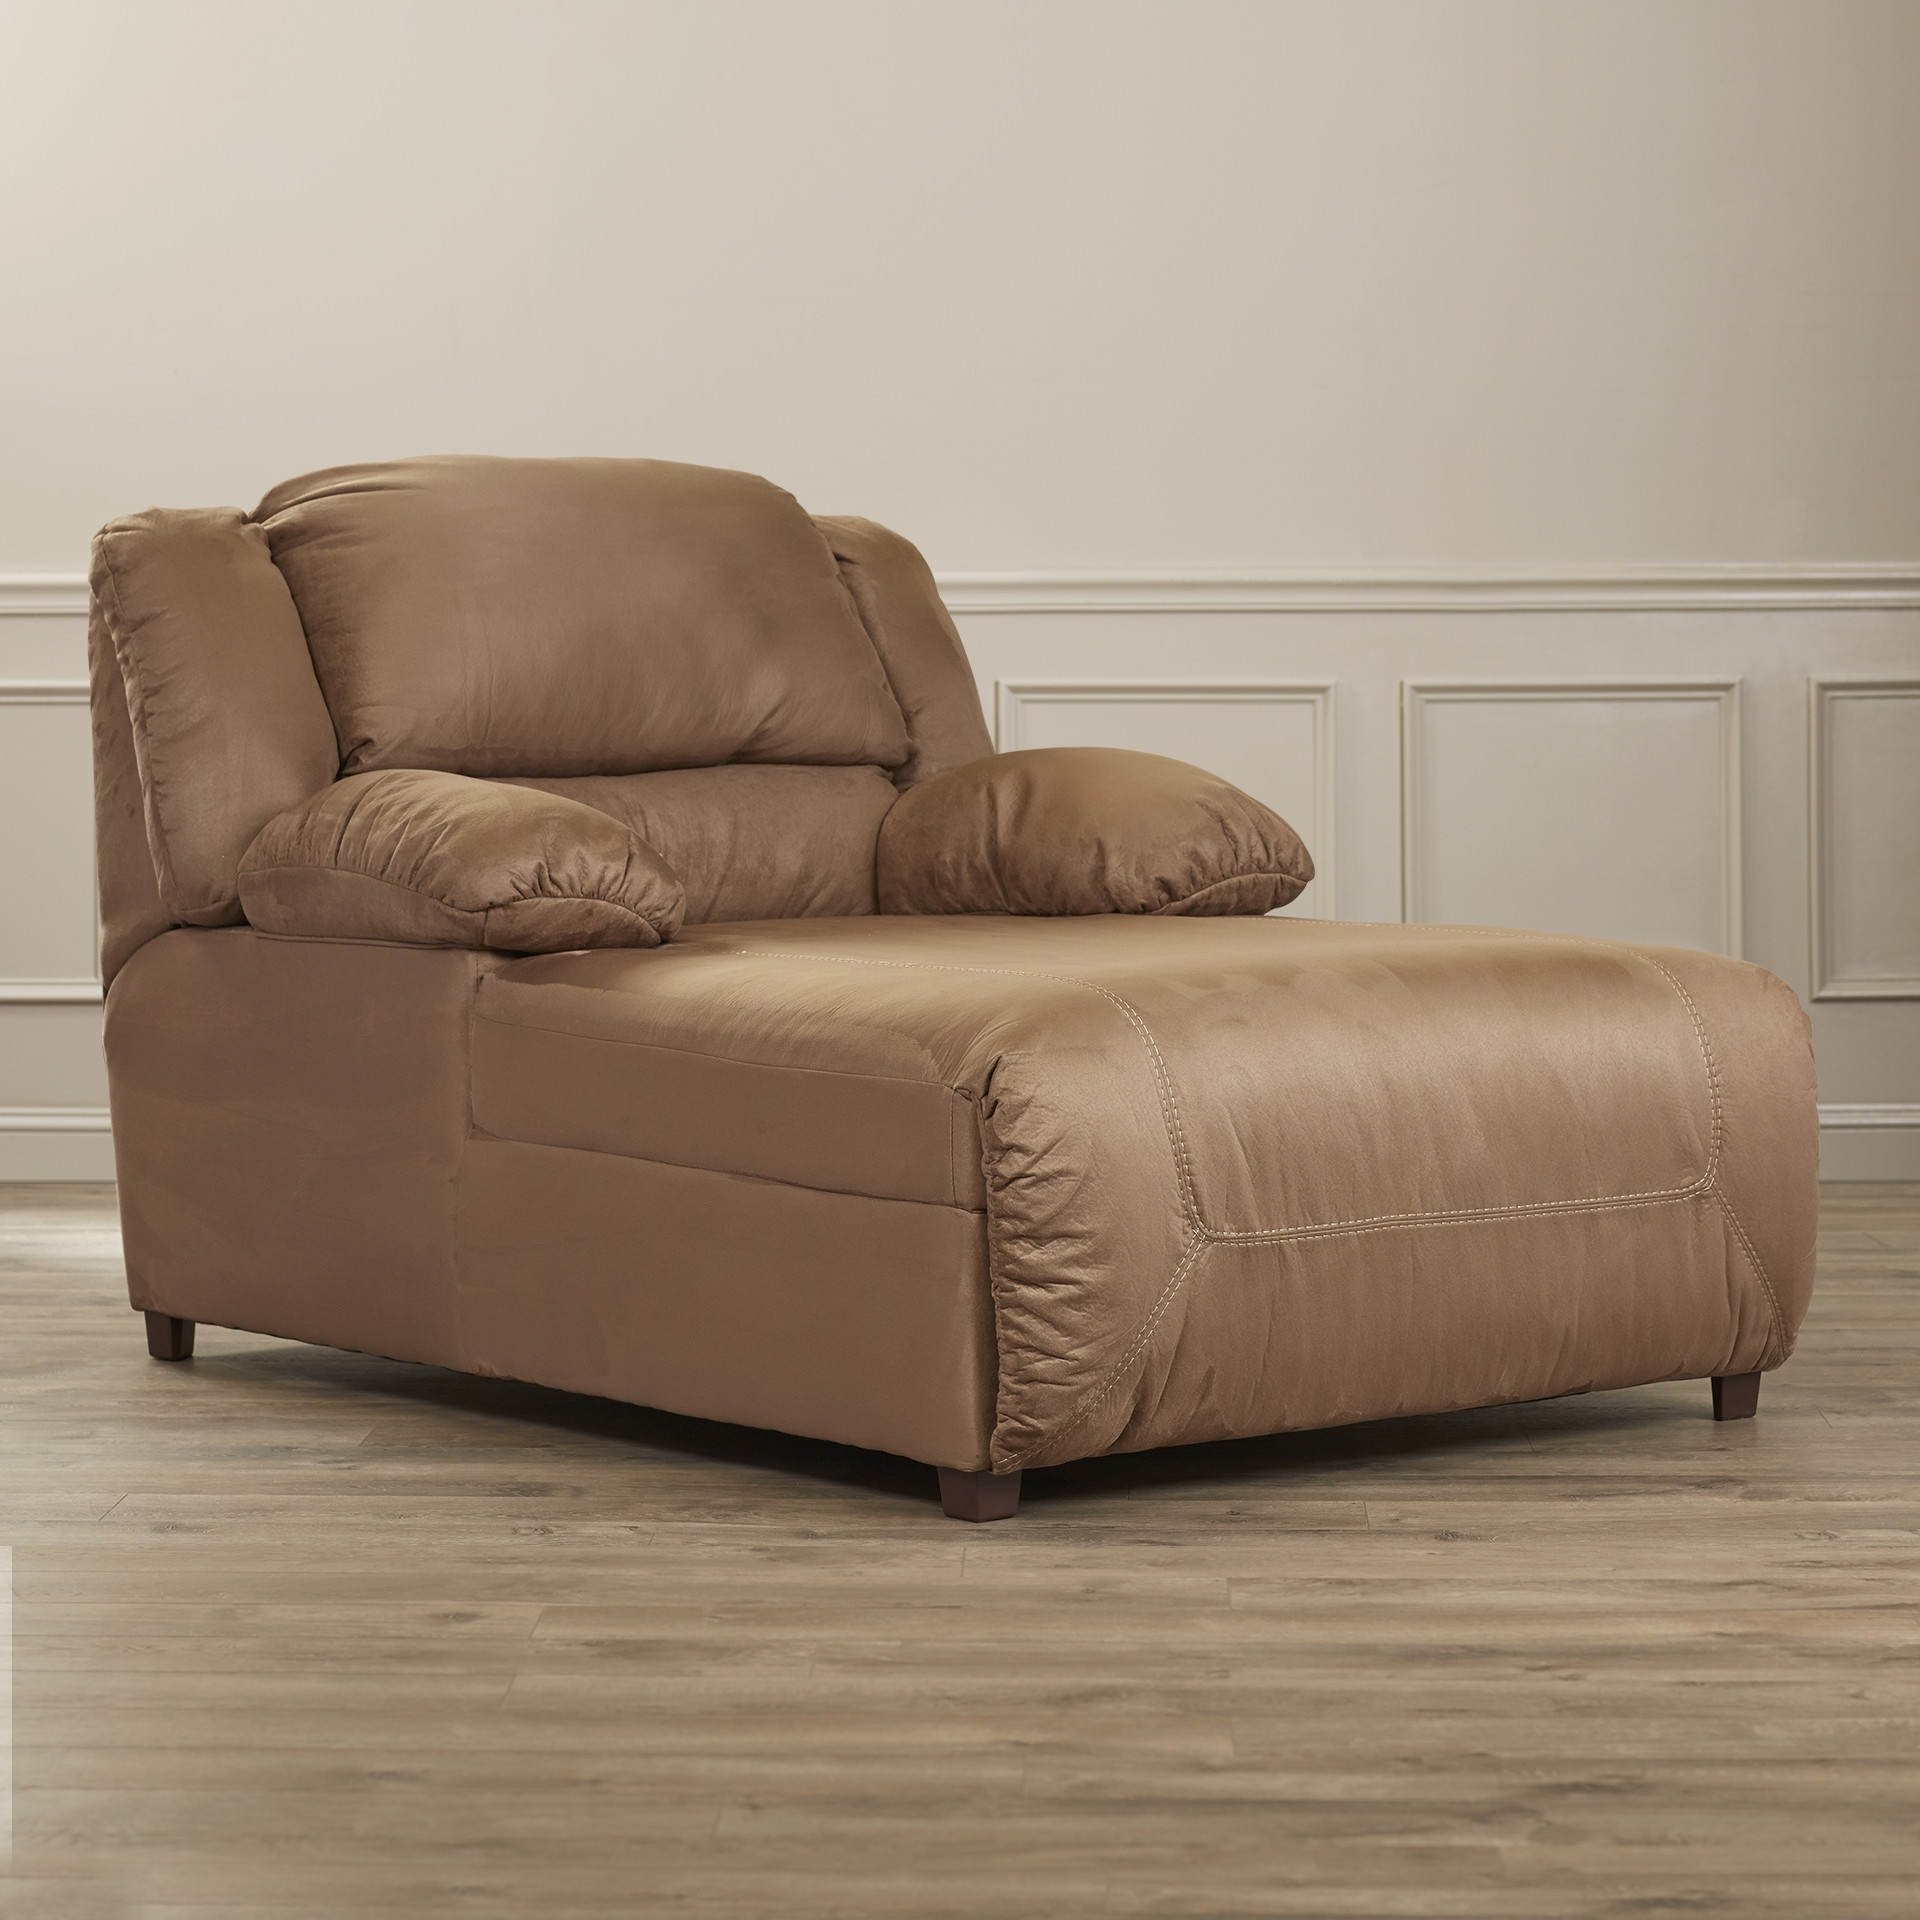 Most Current Awesome Microfiber Chaise Lounge Chair – Home Inside Microfiber Chaises (View 12 of 15)